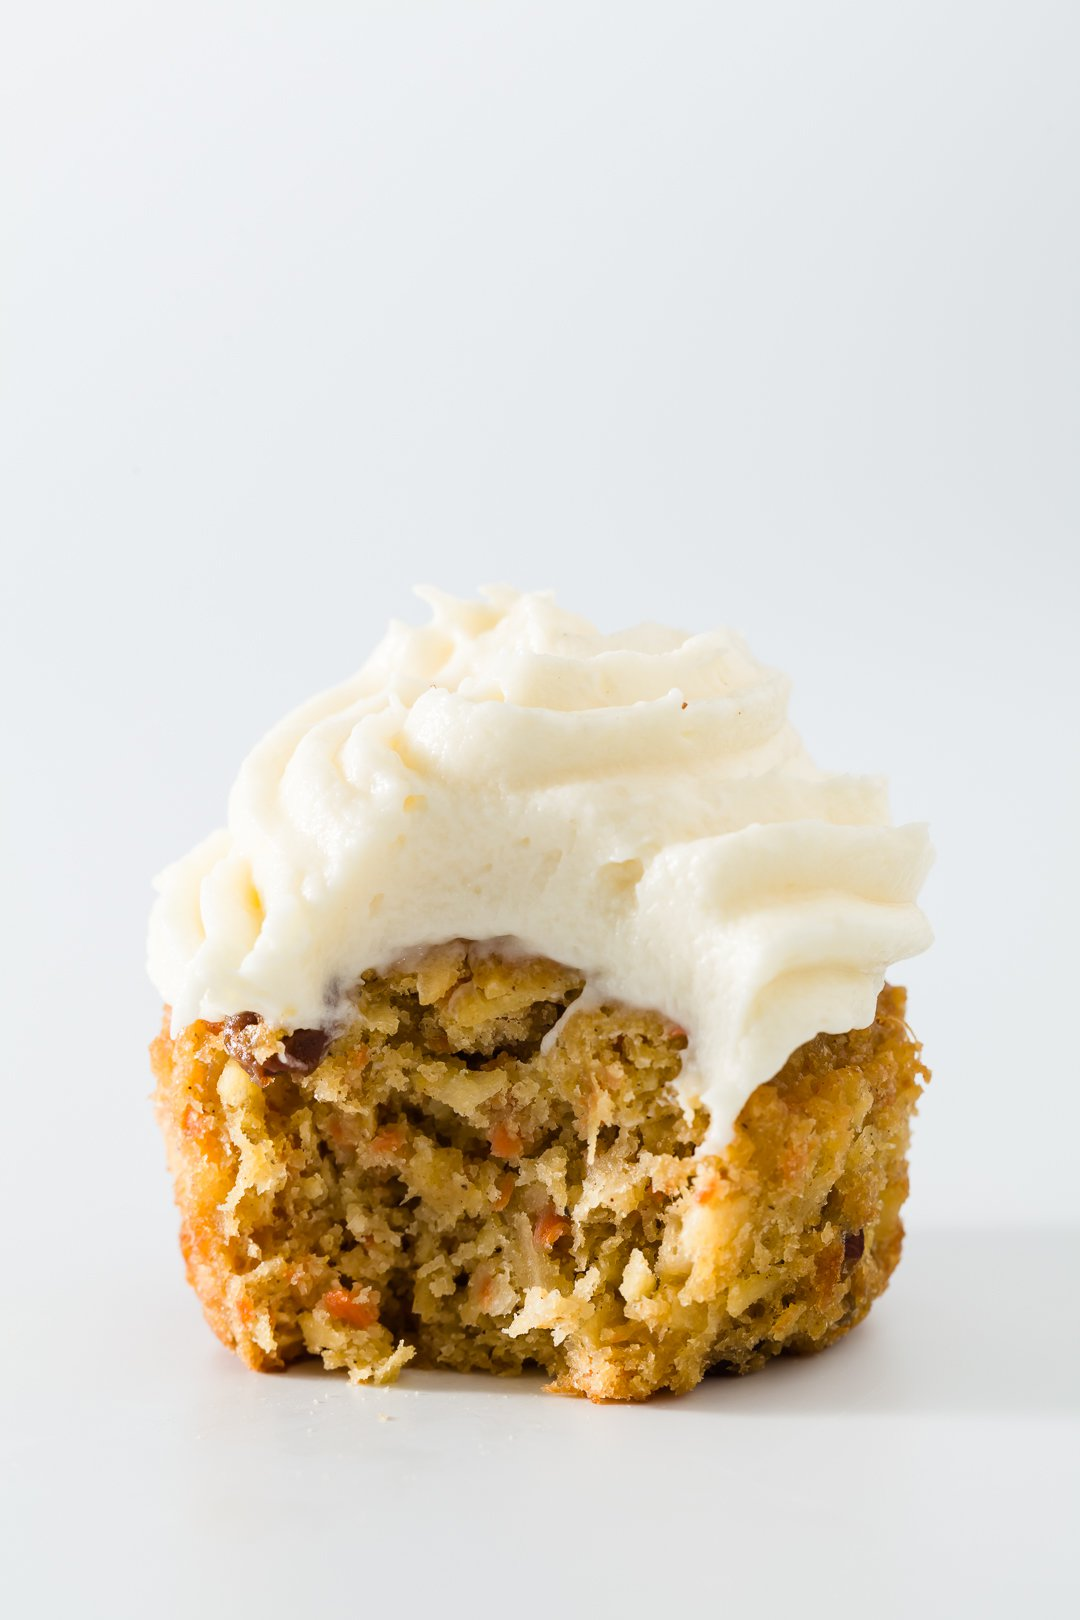 One carrot cake cupcake with a bite taken out of it